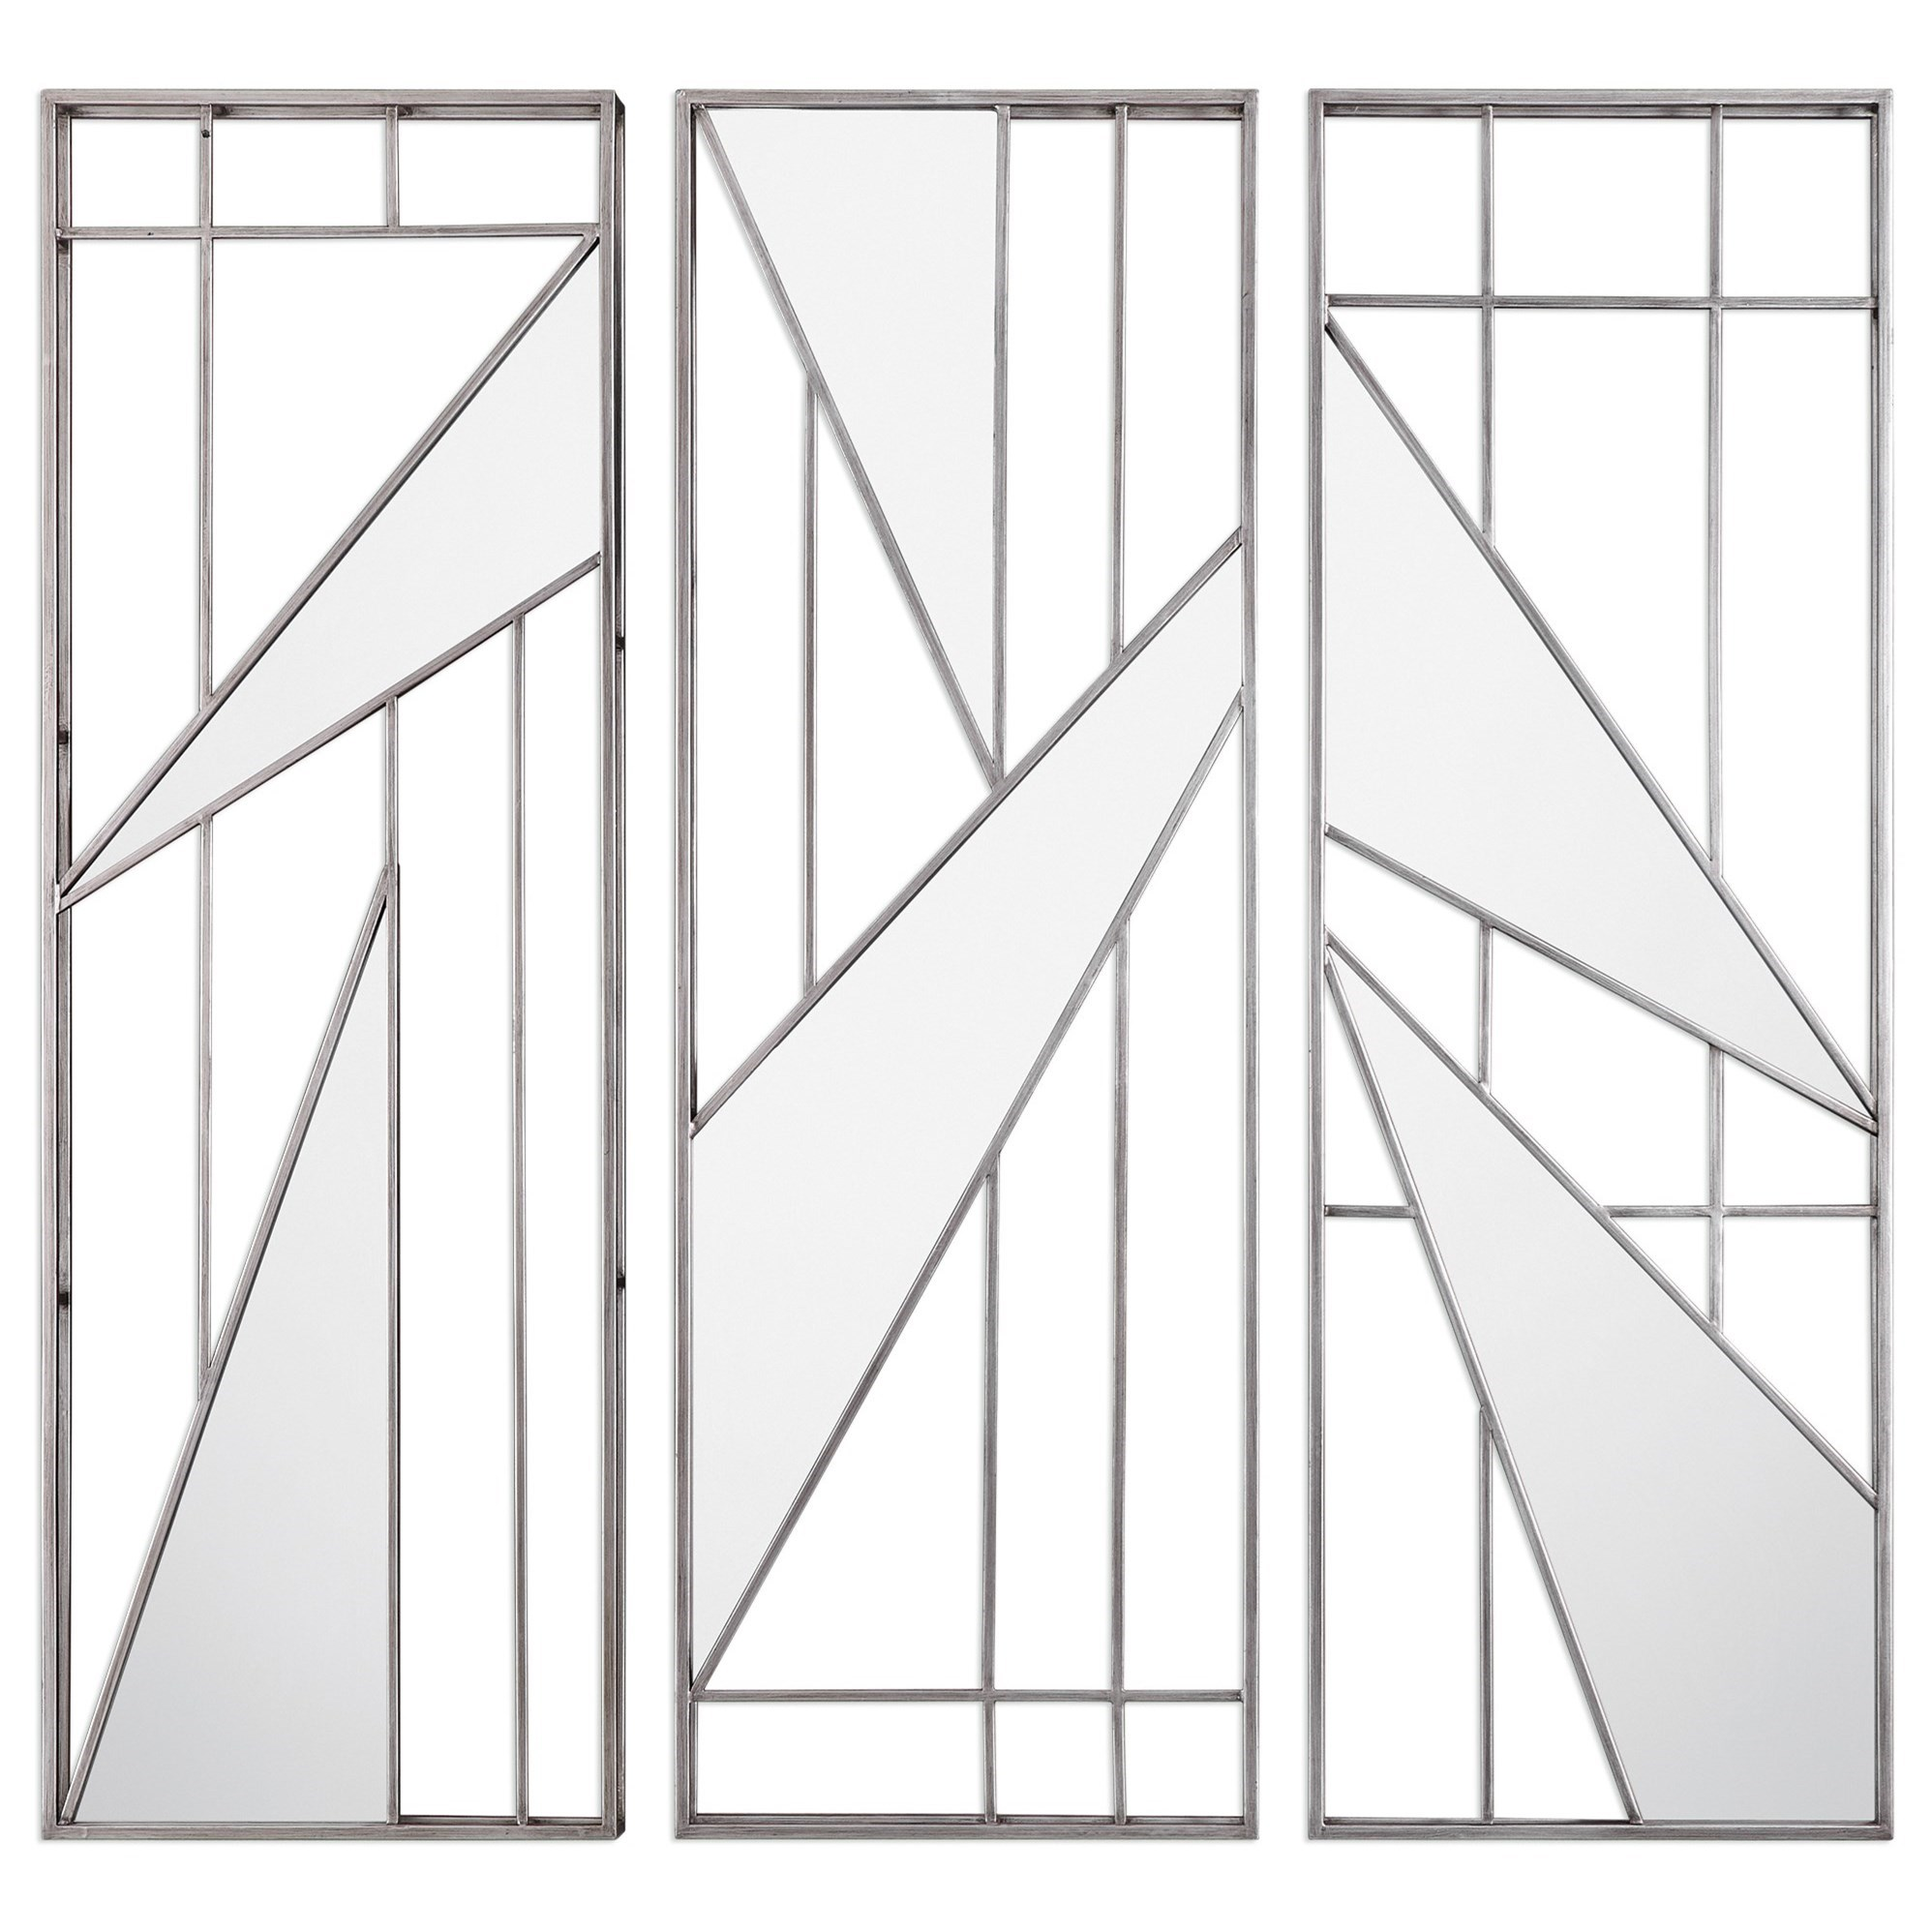 Uttermost Alternative Wall Decor  Ryker Modern Mirrored Wall Art (Set of 3) - Item Number: 04050